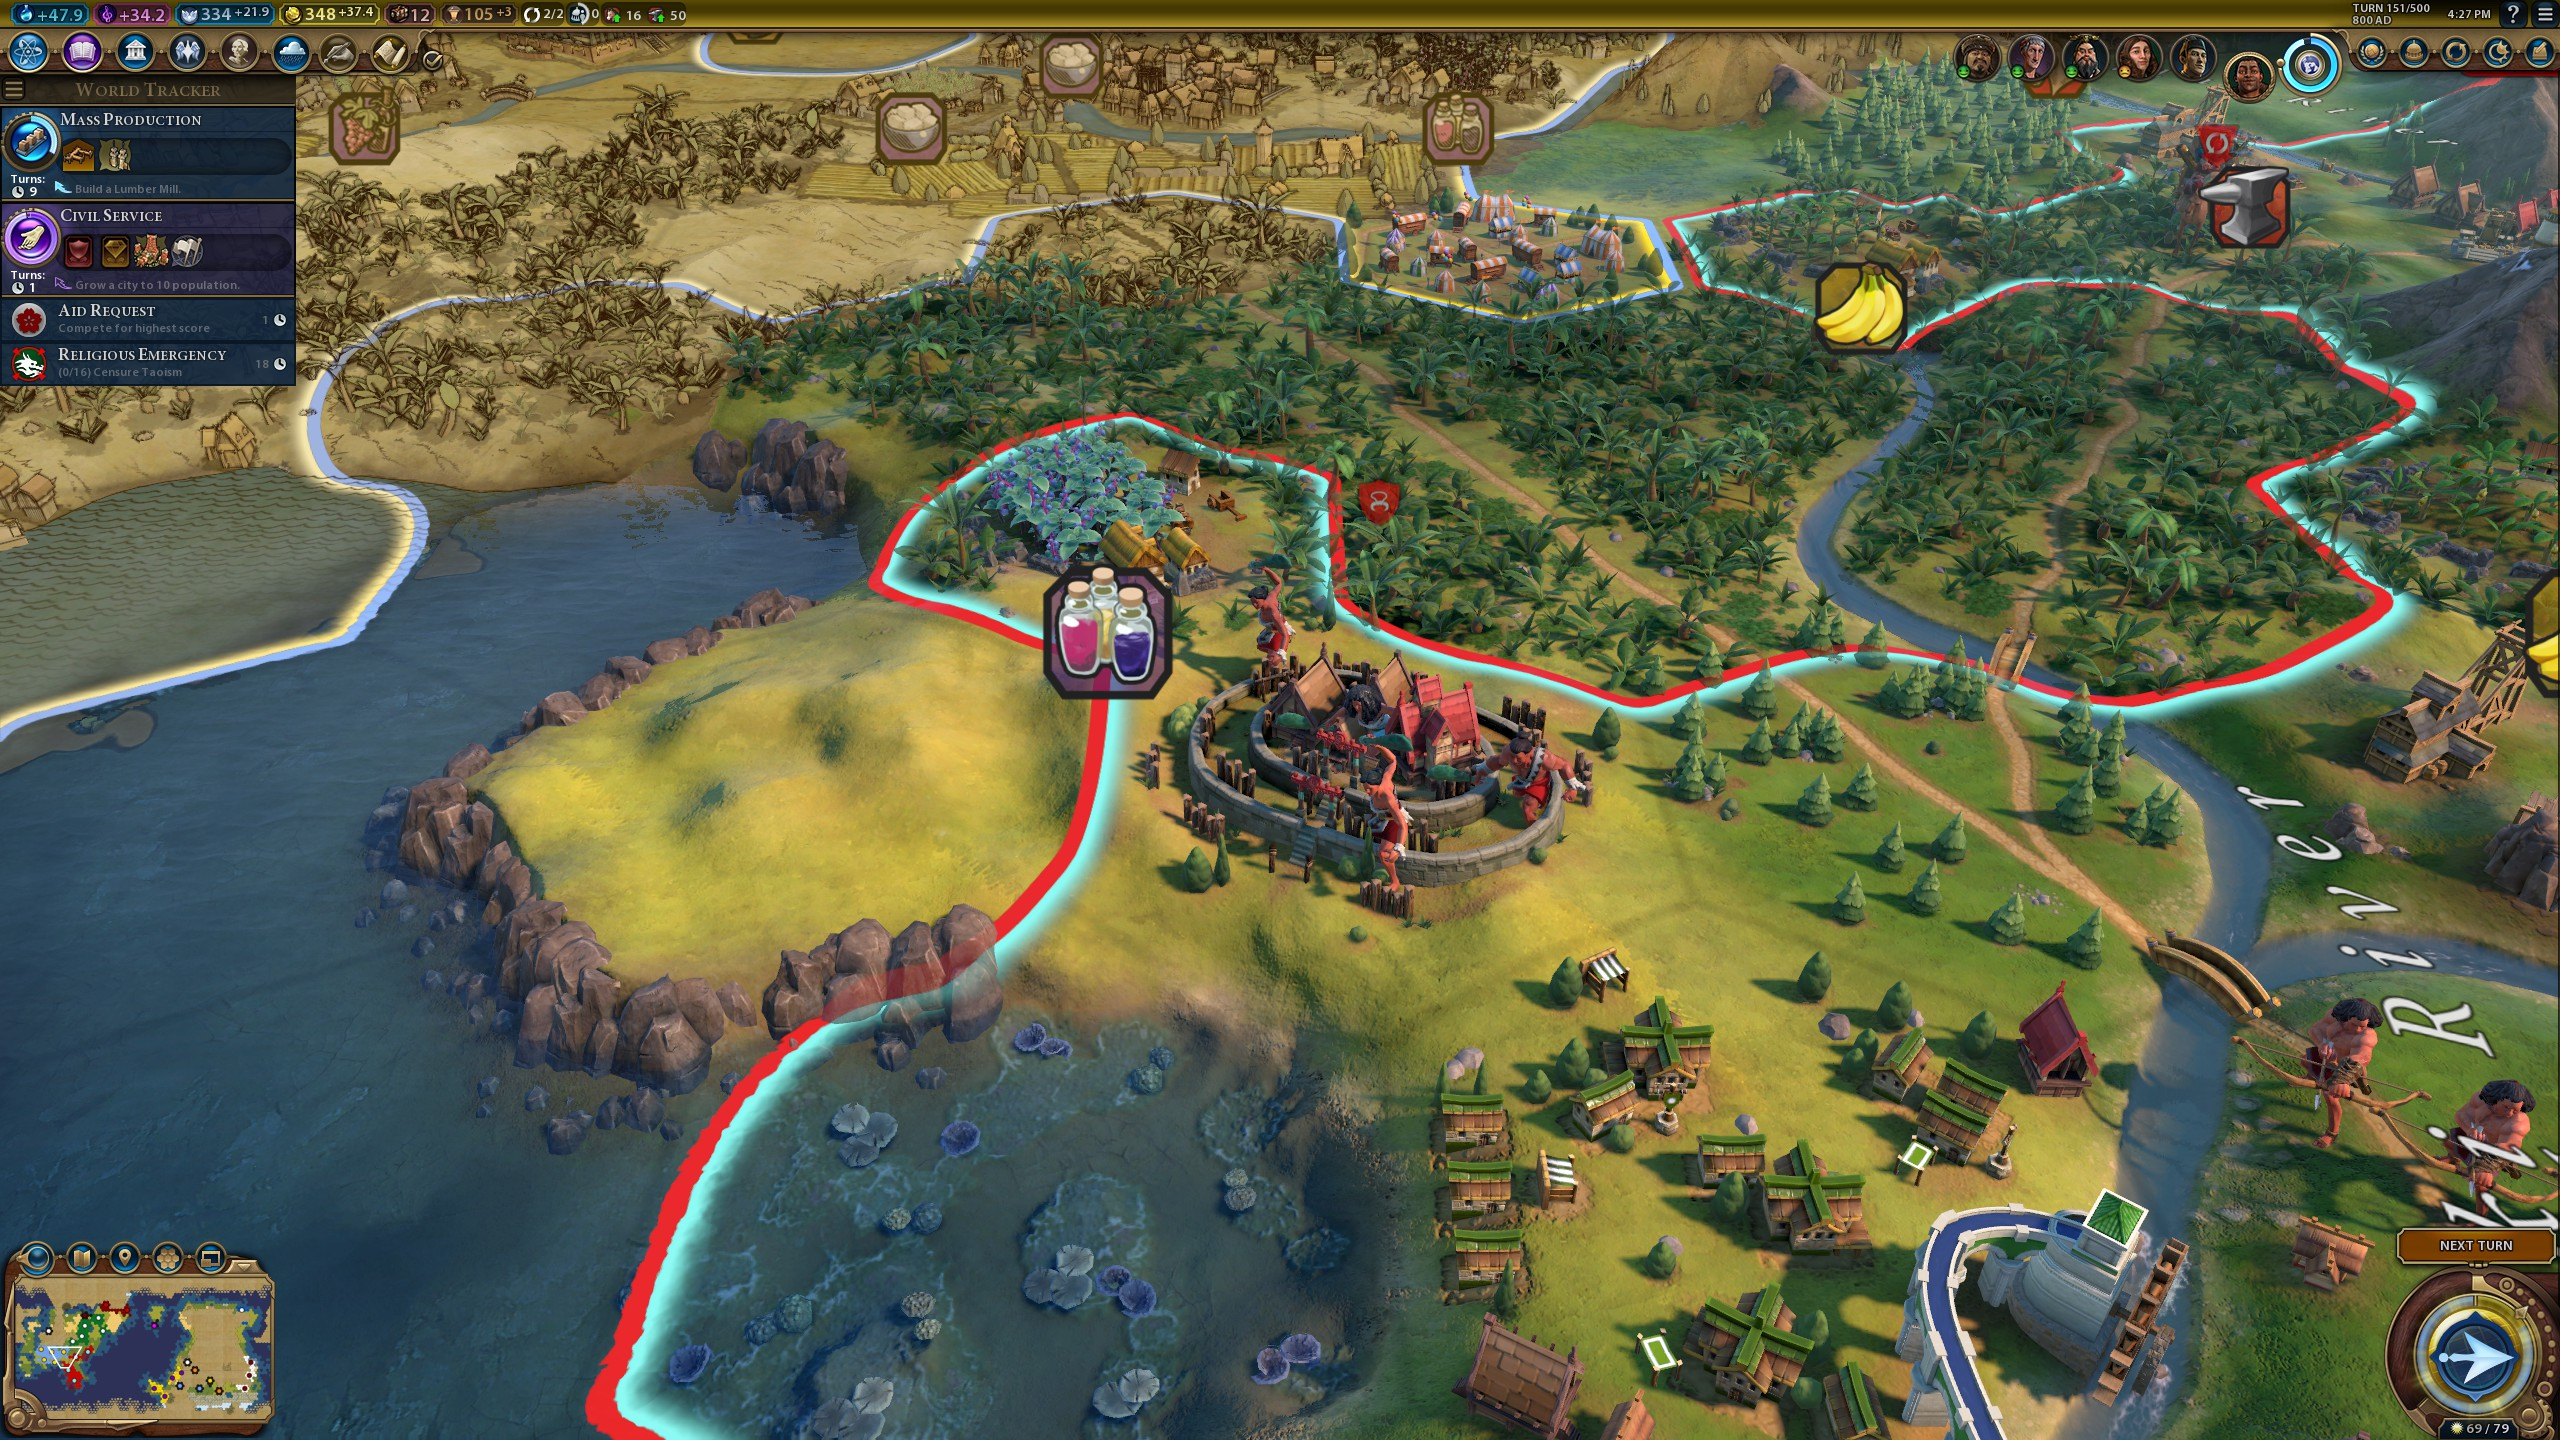 Civ 6: Gathering Storm brings welcome drama to an increasingly busy